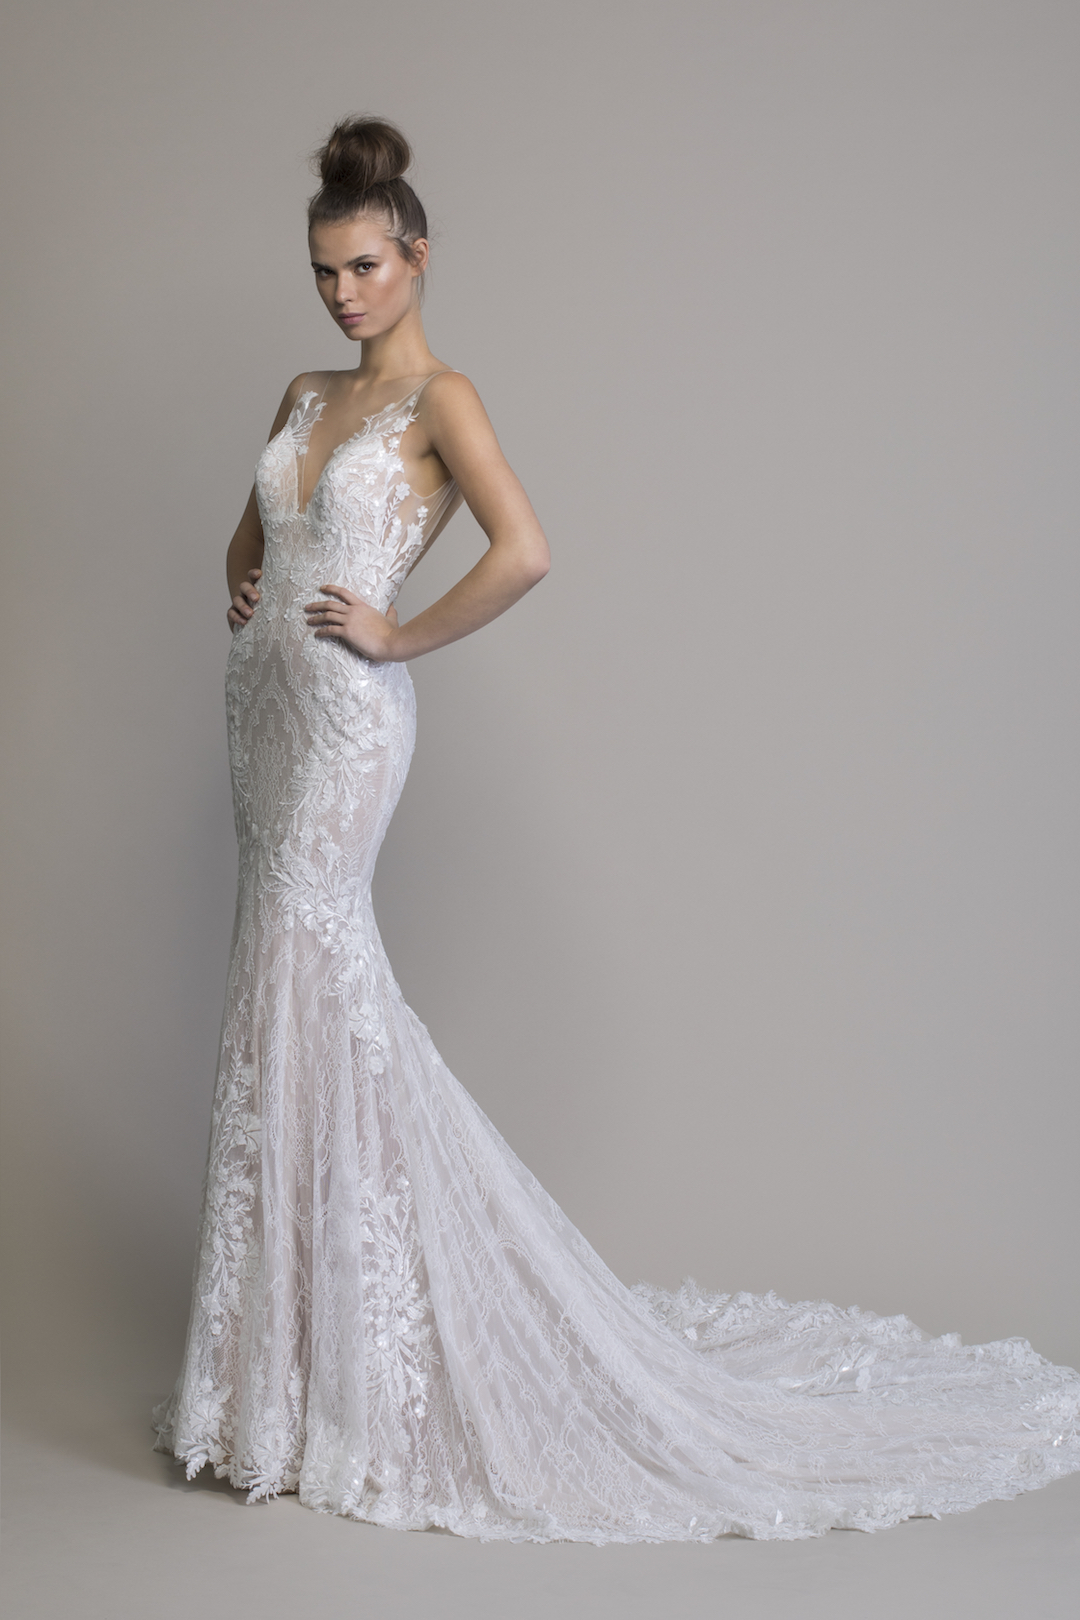 Pnina Tornai's new LOVE 2020 Collection is out! This is style 14755